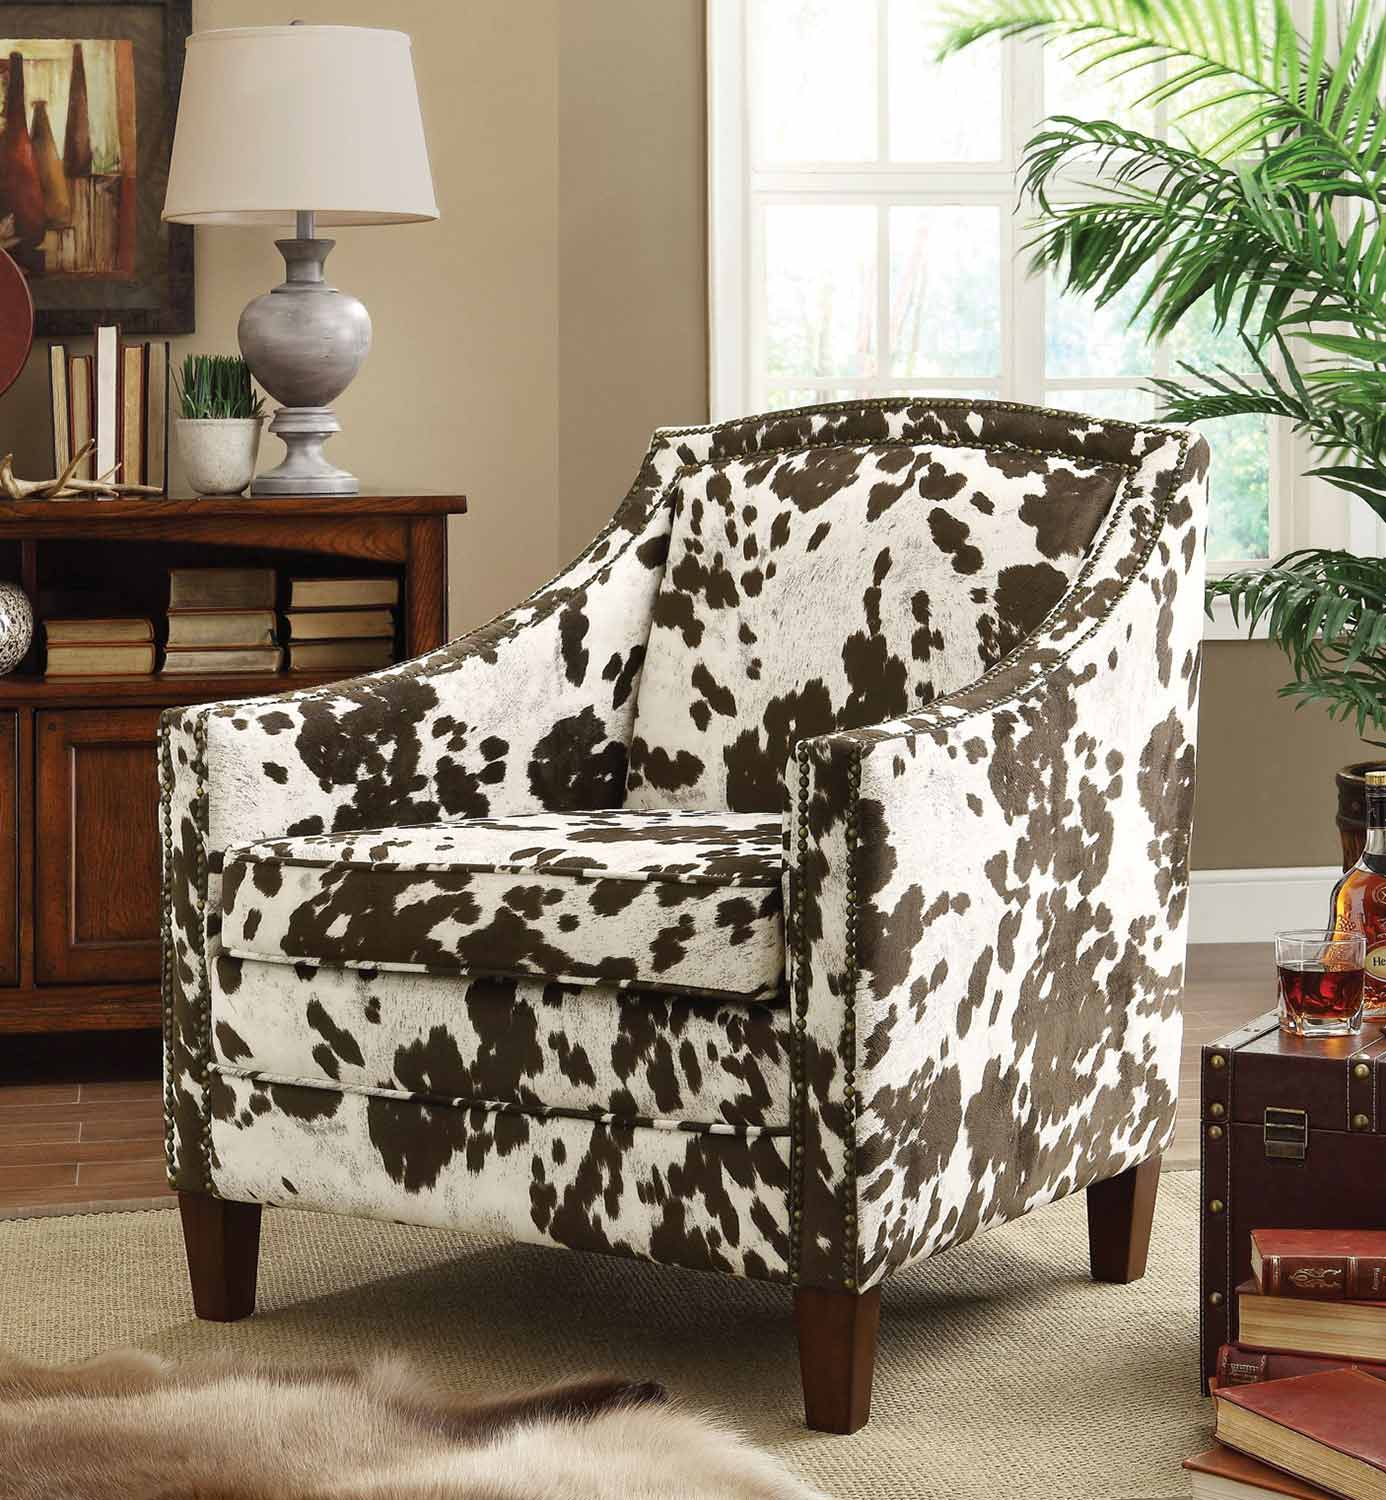 Coaster 902134 Accent Chair - Brown/White Cow Pattern